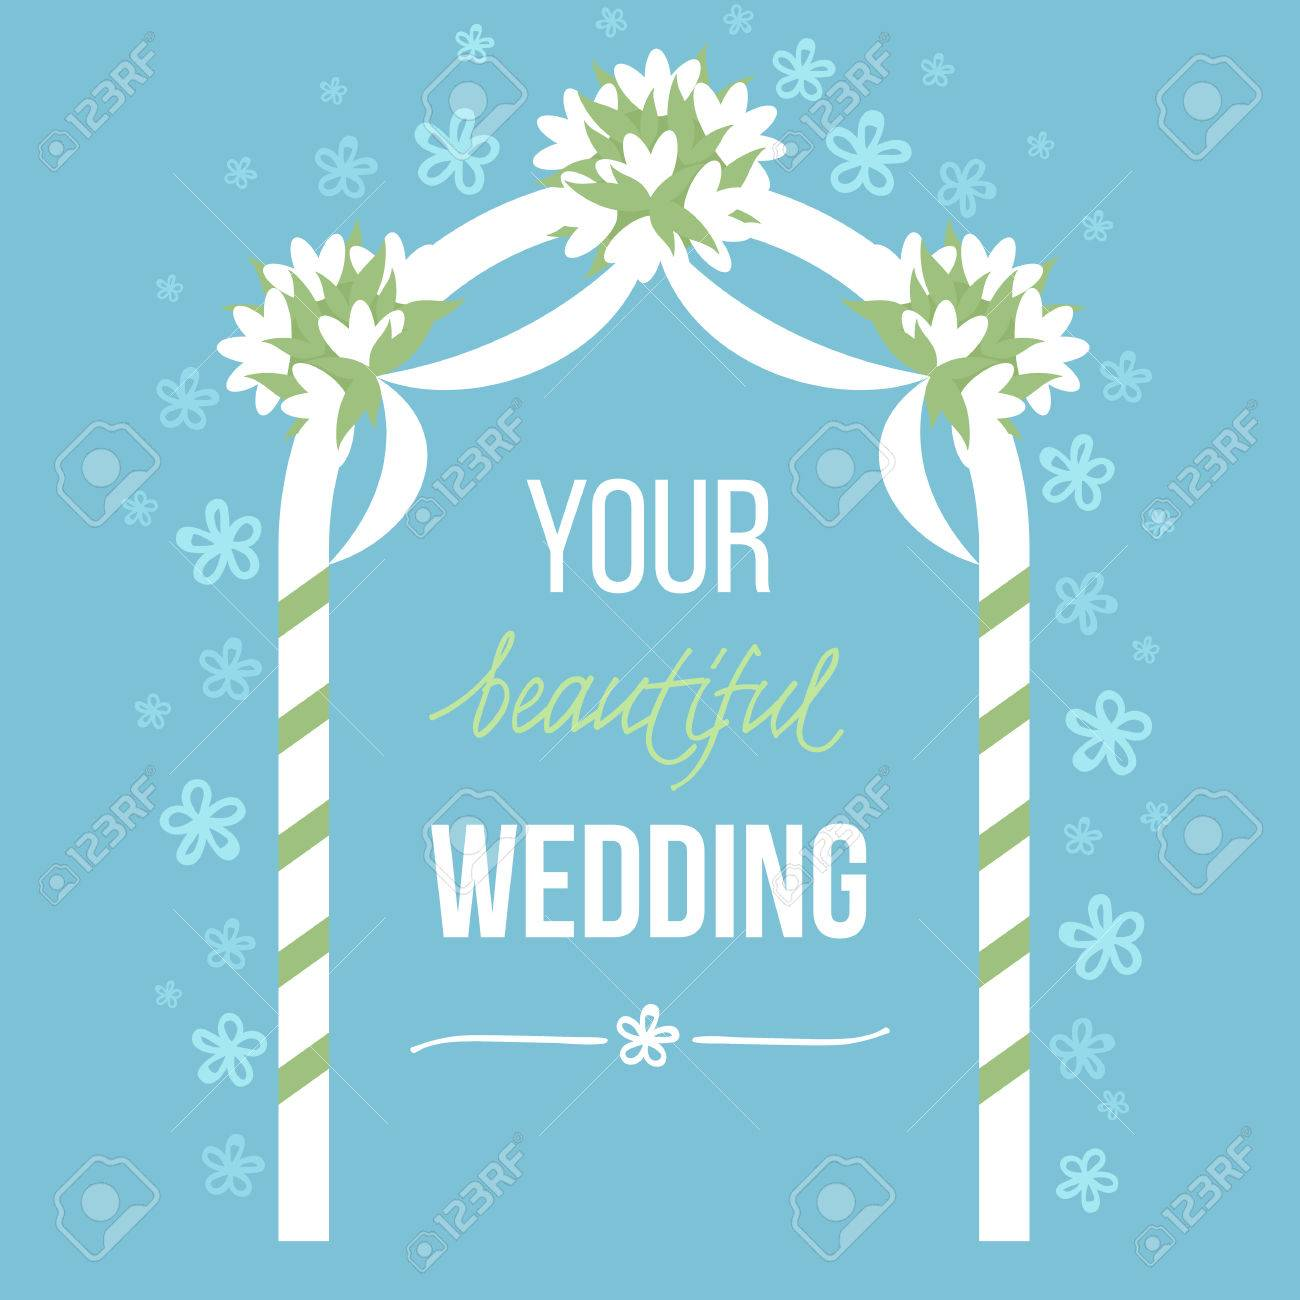 Vector illustration of wedding decoration with and hand drawn elements. Soft pastel colors. Flat style - 53441866